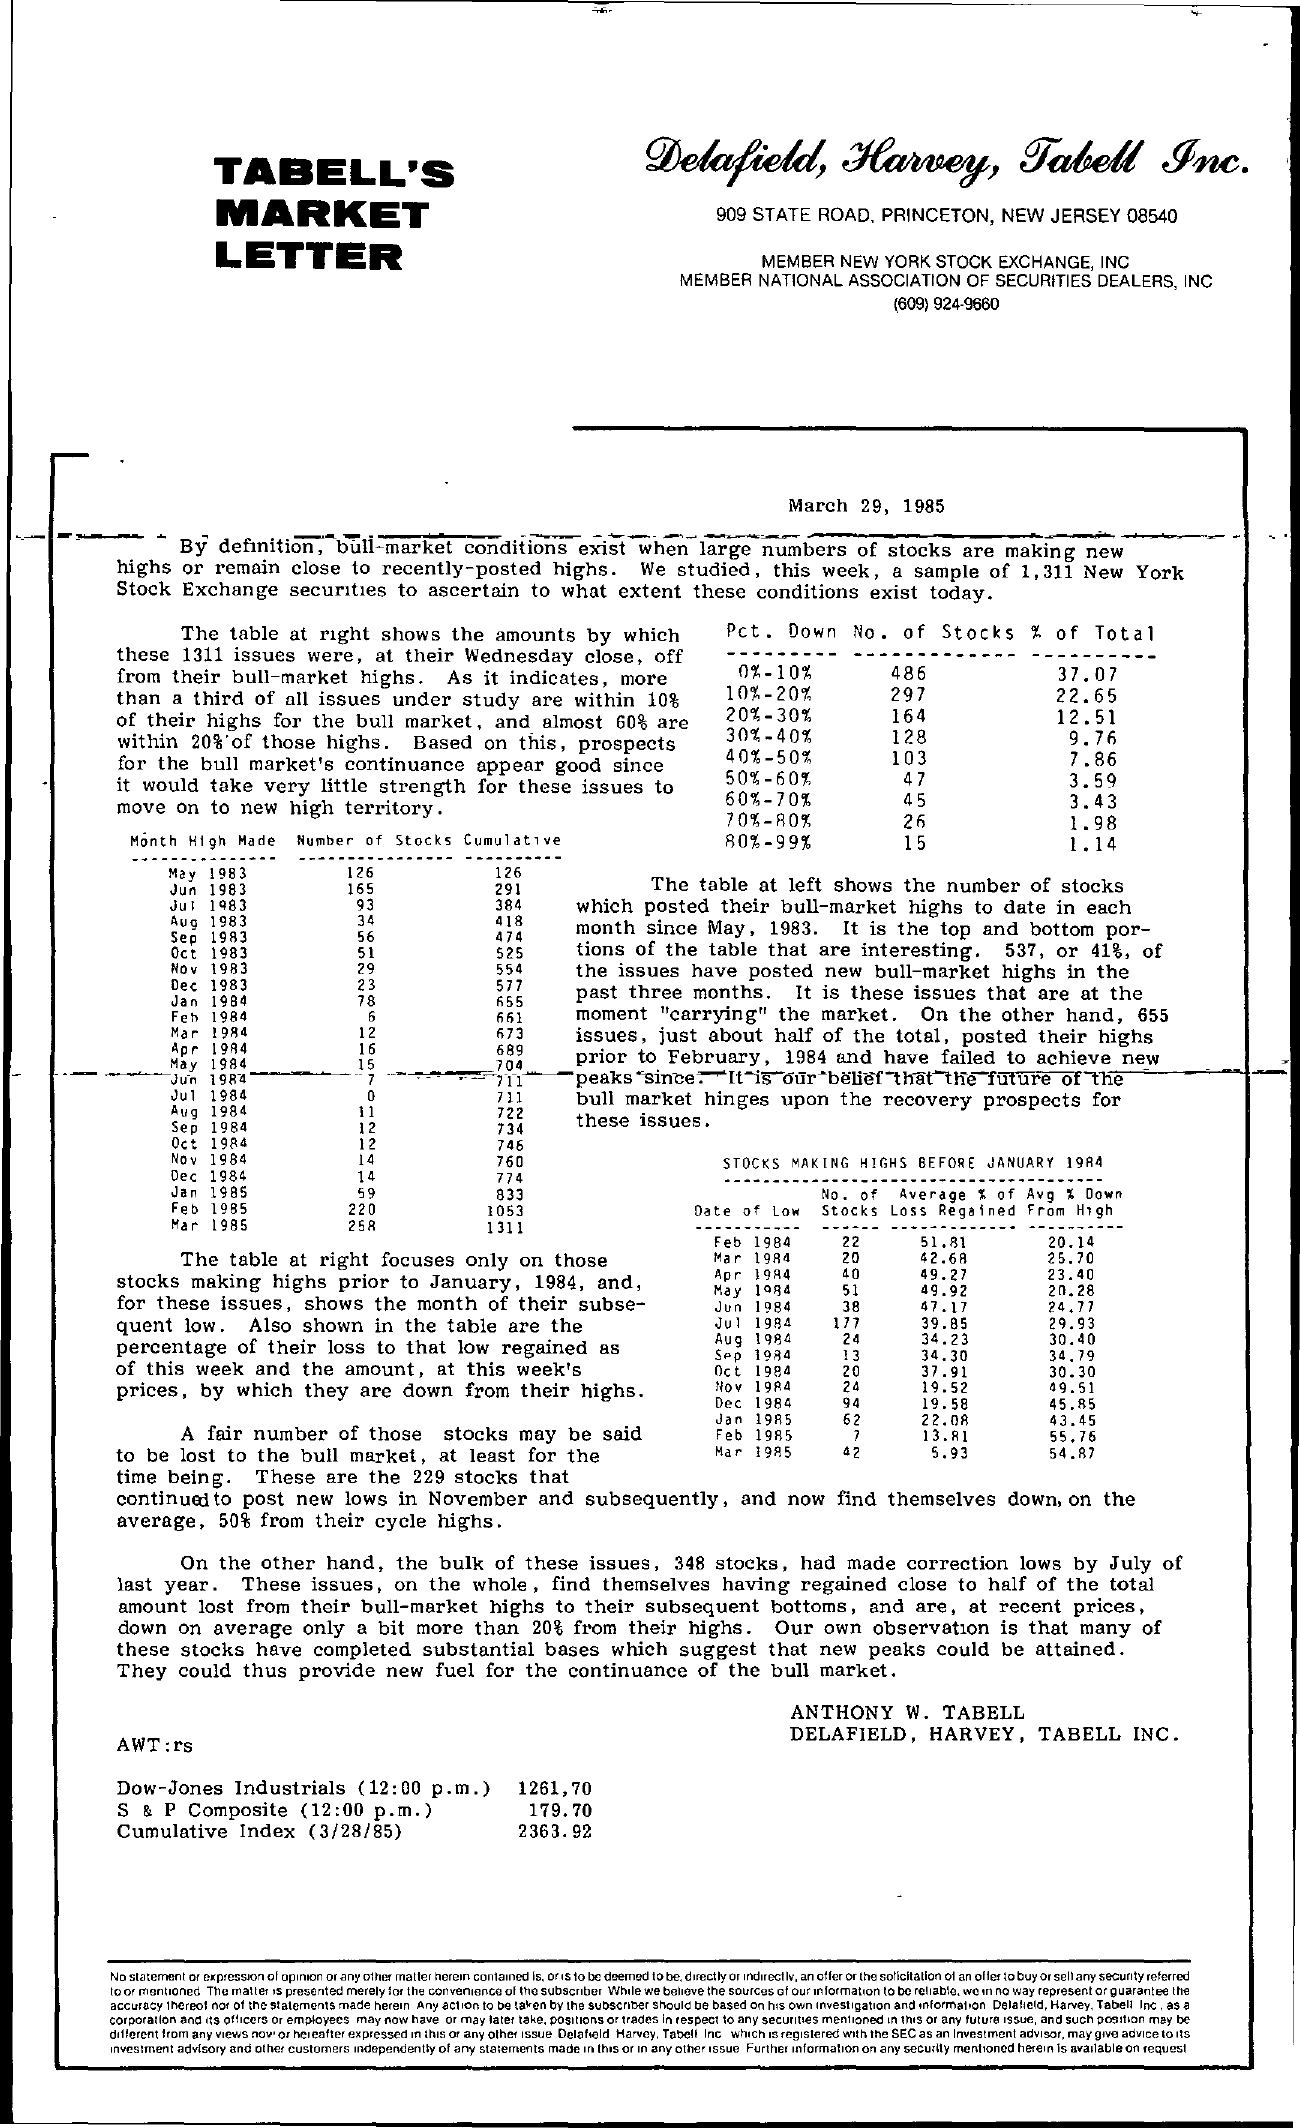 Tabell's Market Letter - March 29, 1985